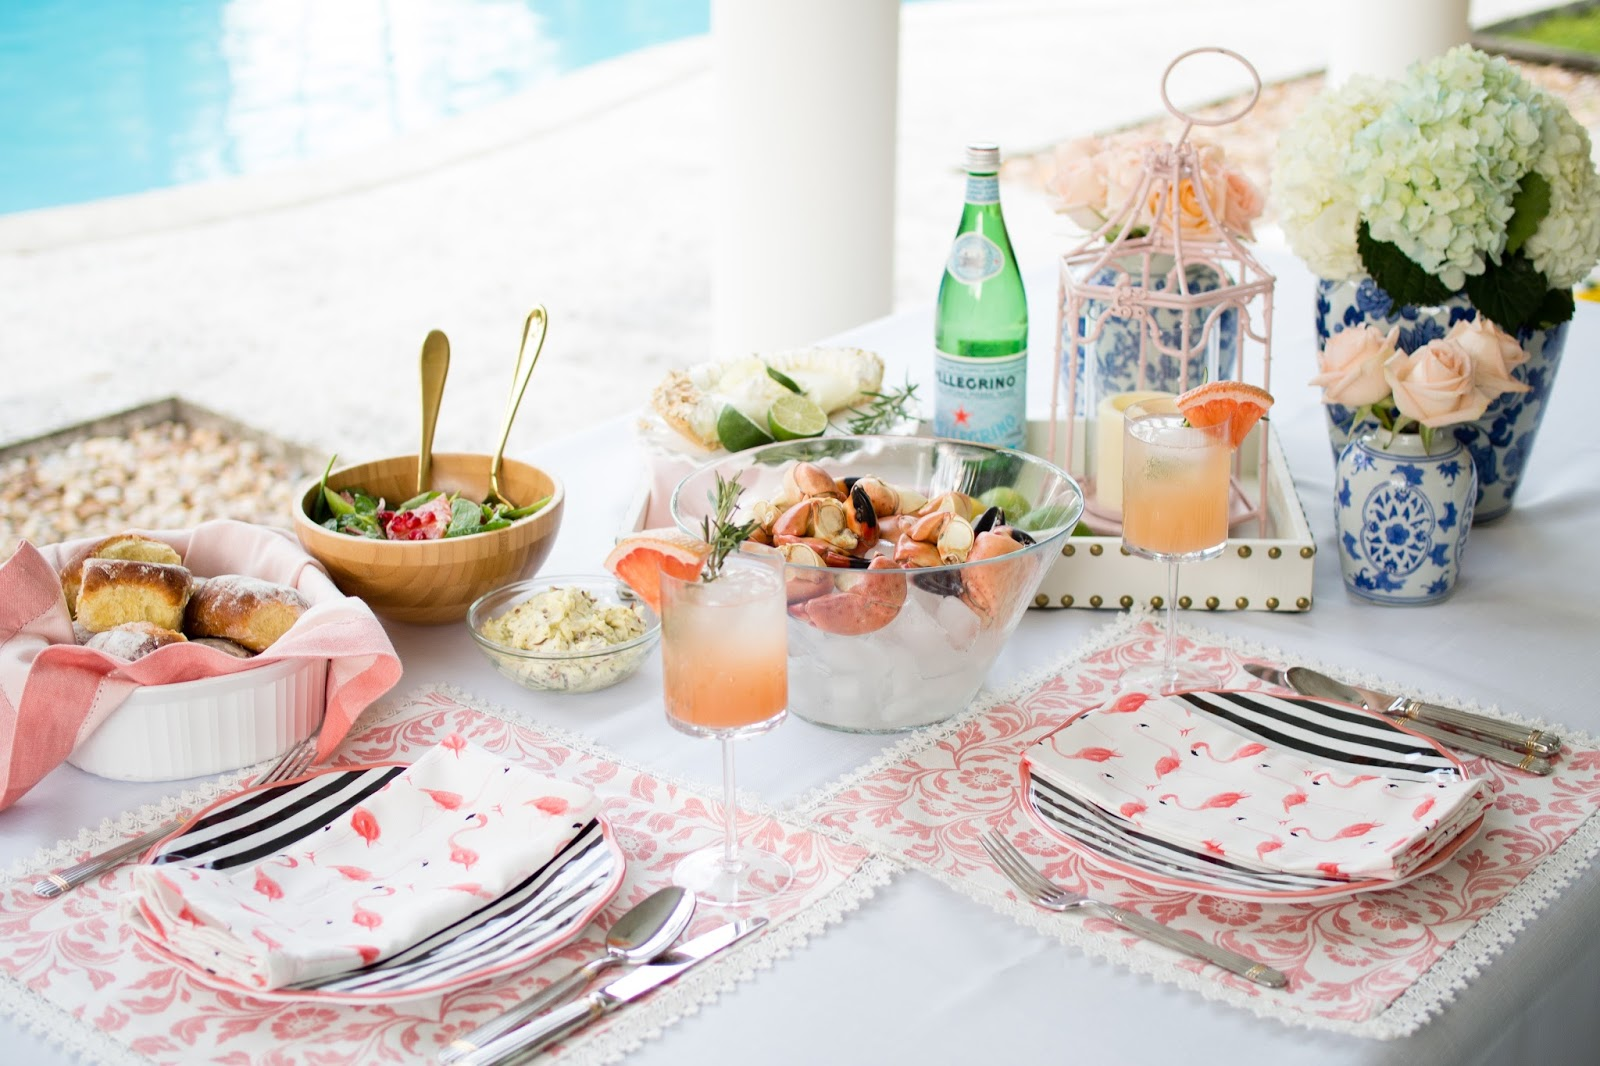 Take outdoor dining to the next level with chic décor and a no-fuss summer meal